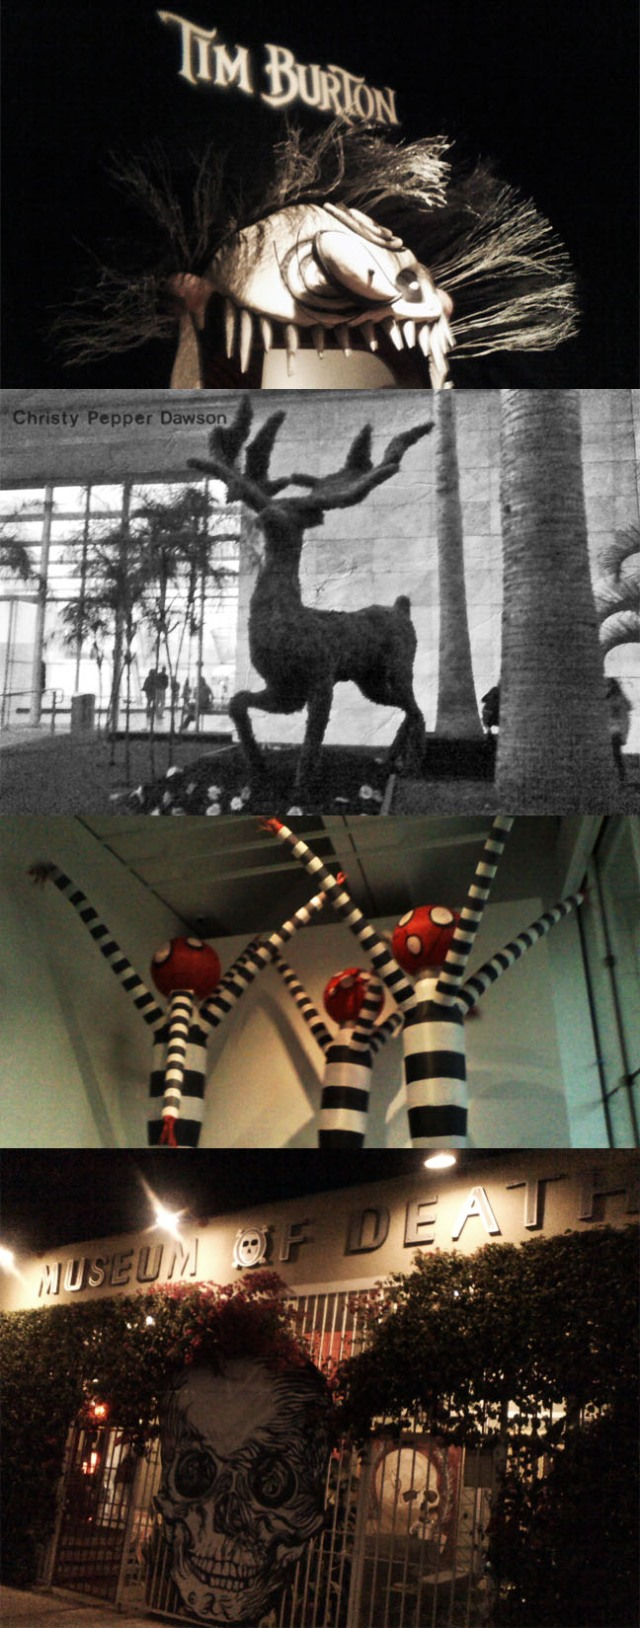 tim burton exhibit